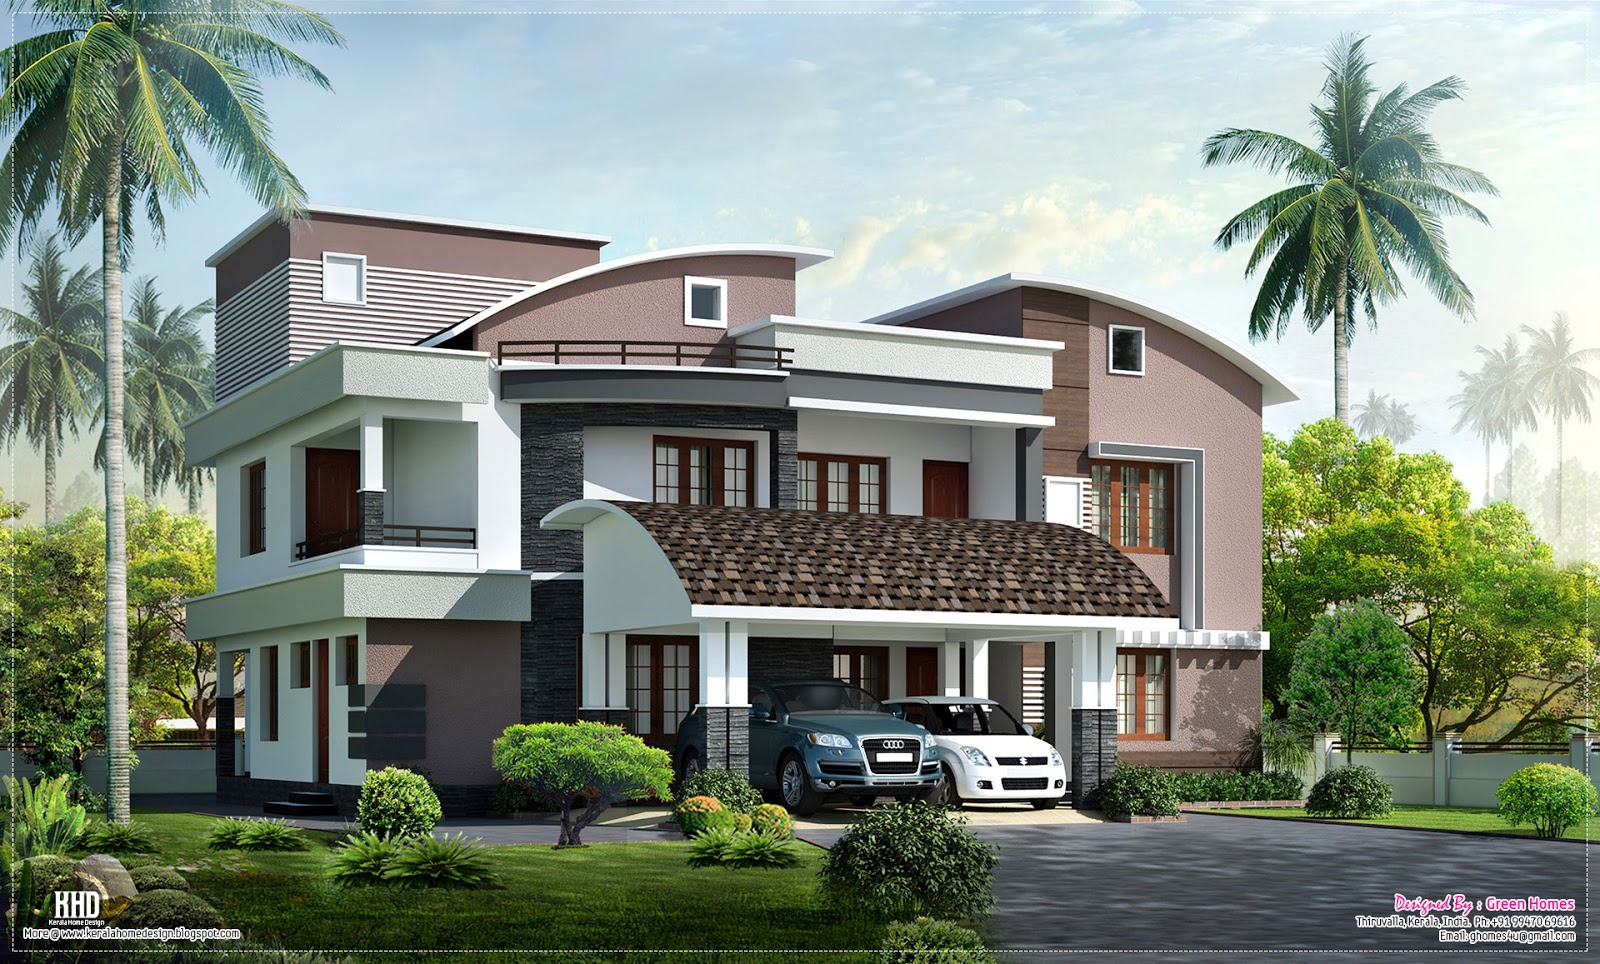 Modern style luxury villa exterior design | Home Kerala Plans